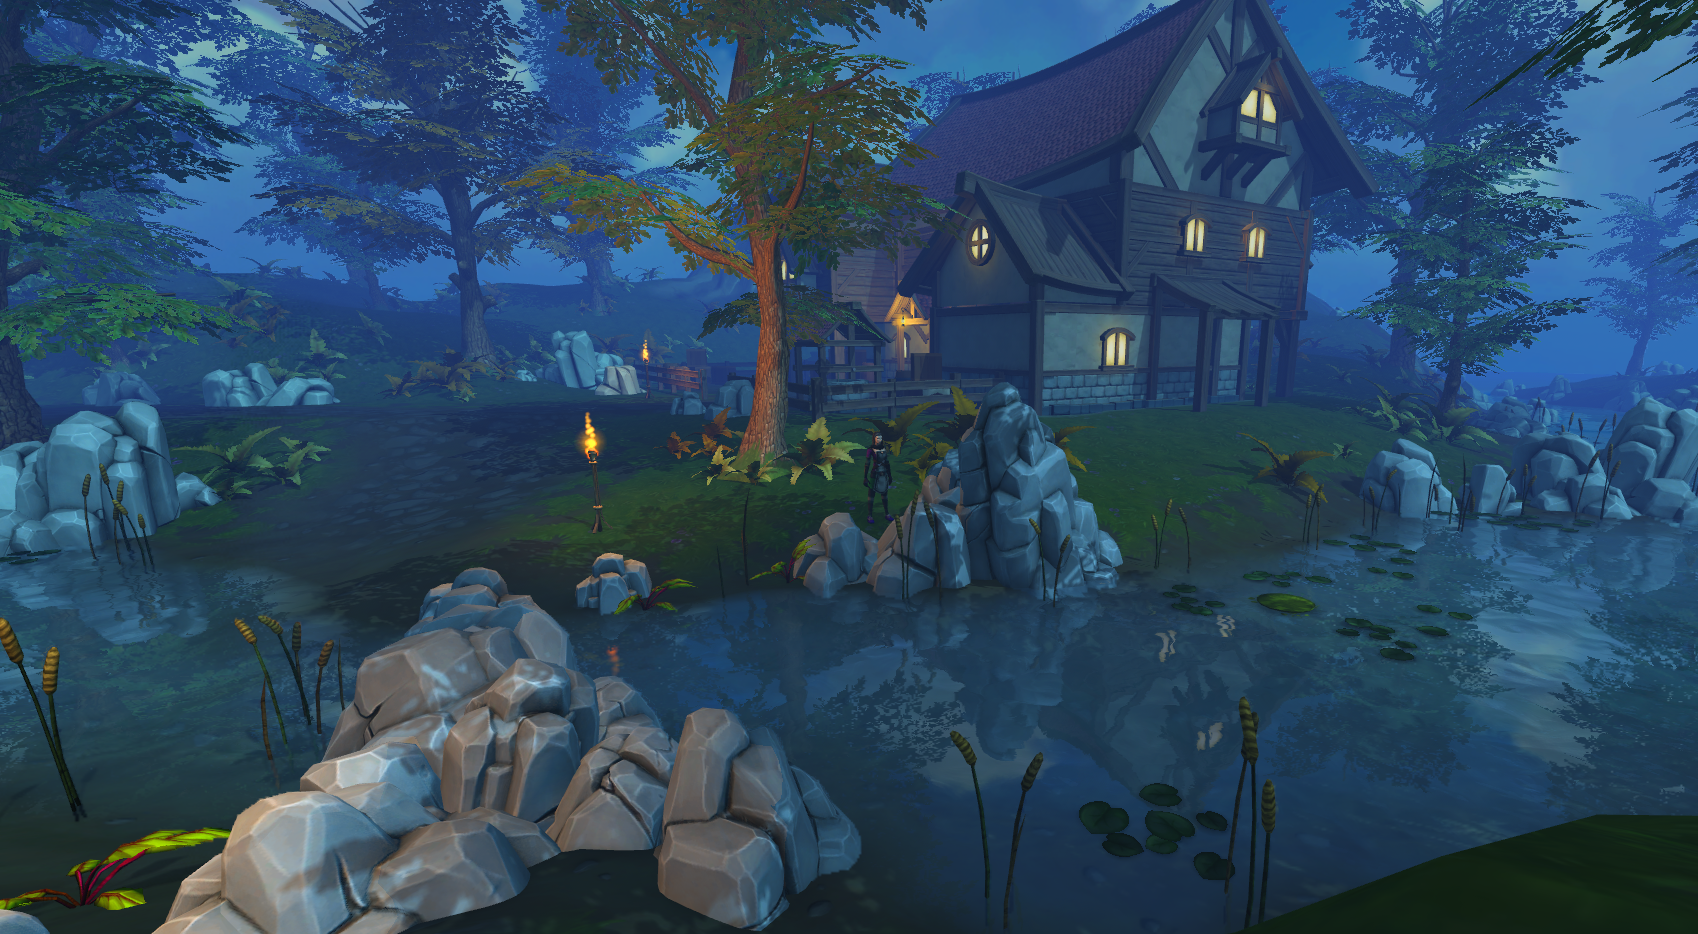 A house in the fantasy world of RuneScape, at night, beside a pond.